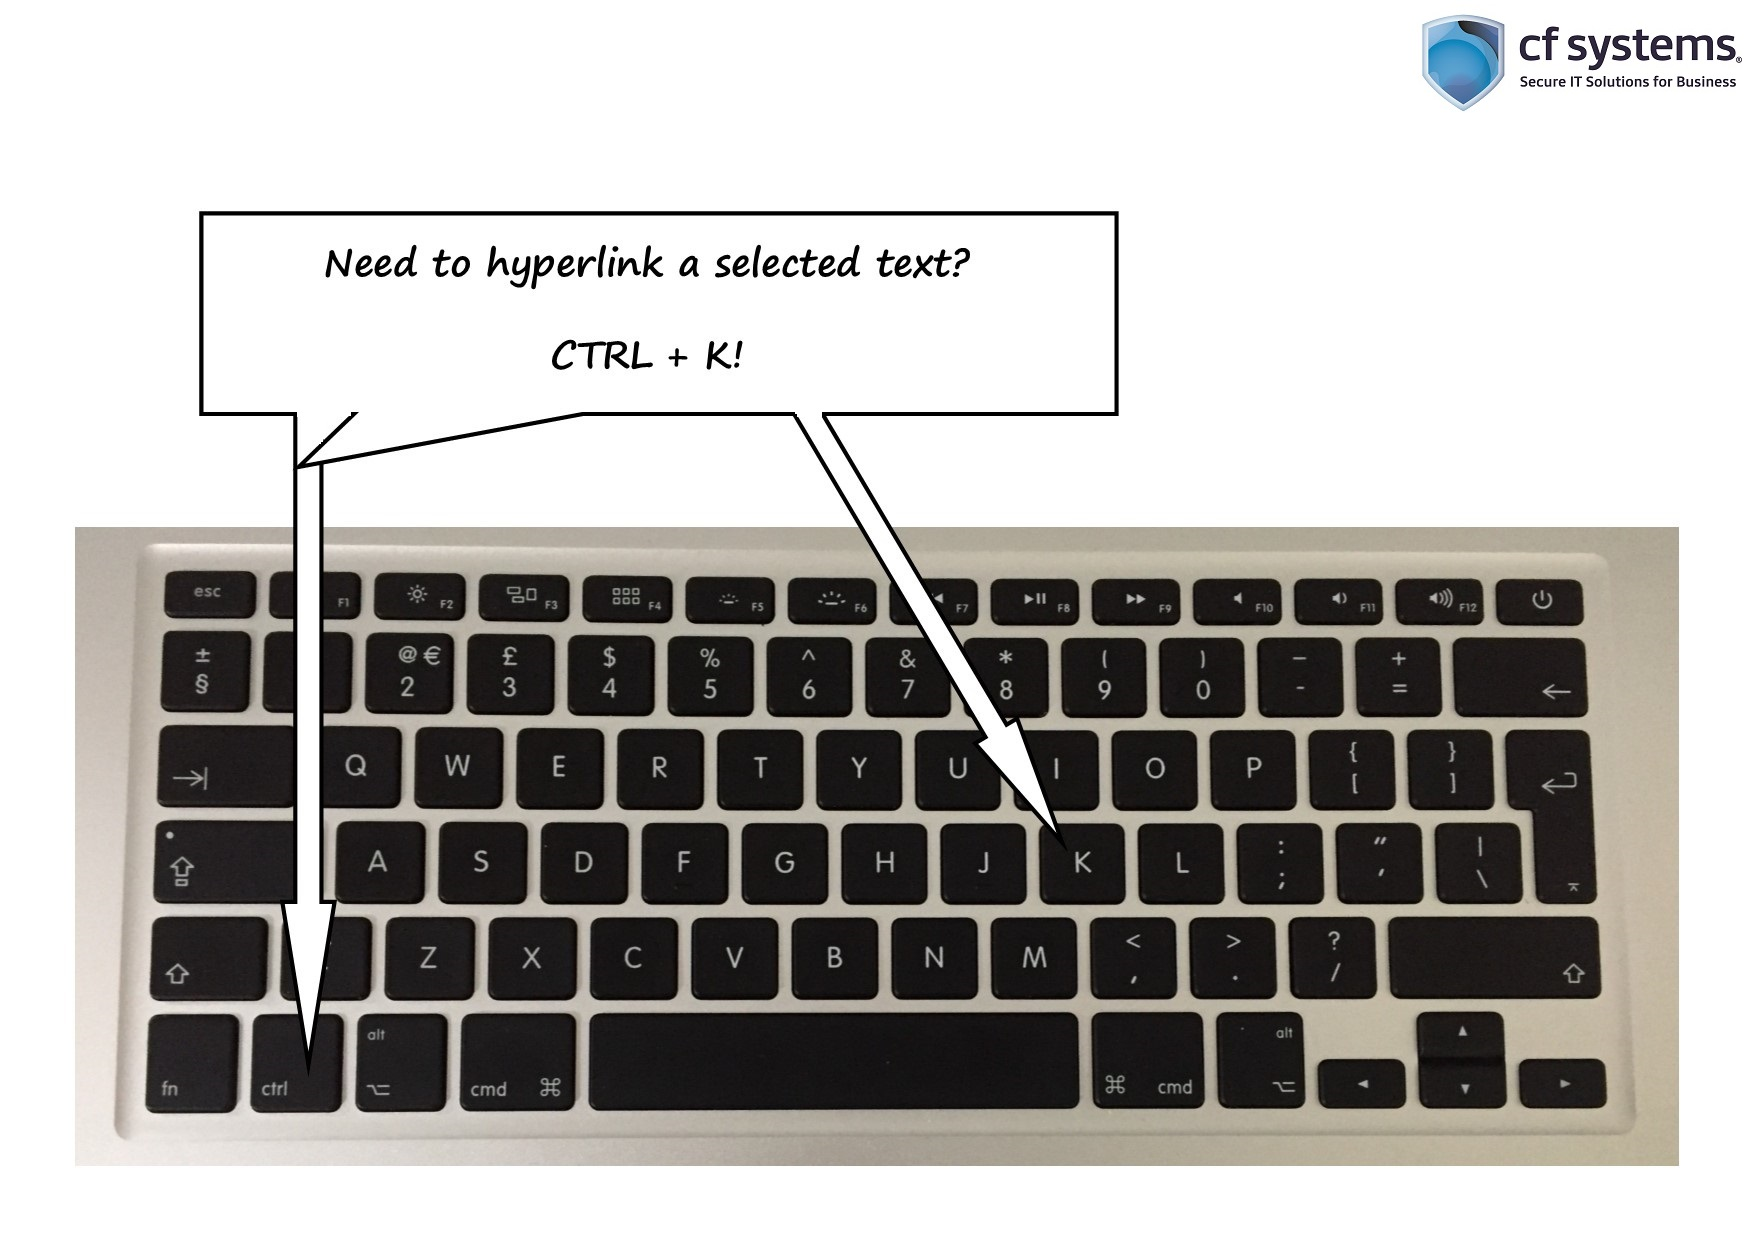 Keyboard Shortcuts! Hyperlink a text without using the mouse!